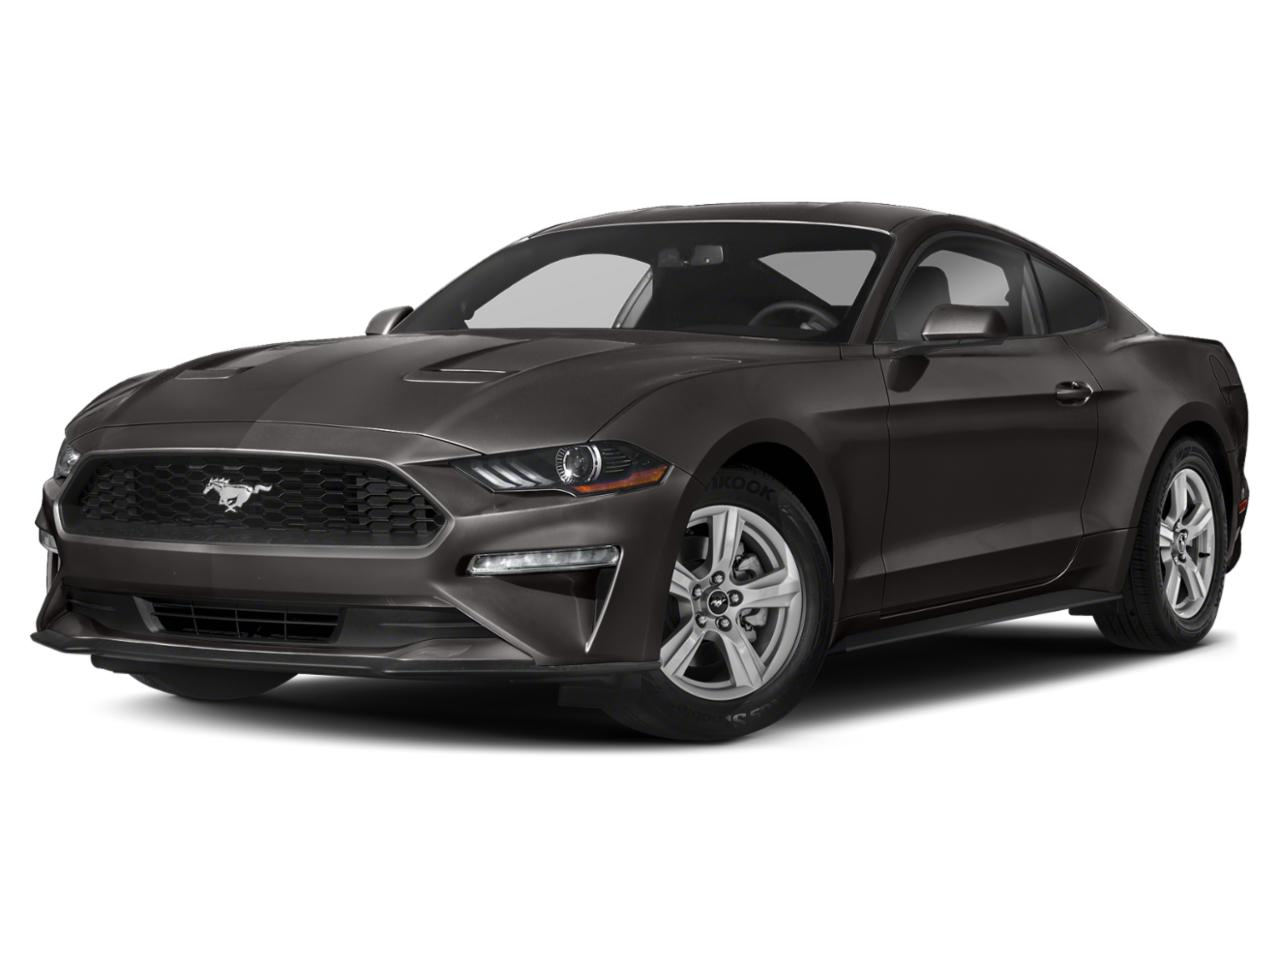 2020 Ford Mustang Vehicle Photo in Concord, NC 28027